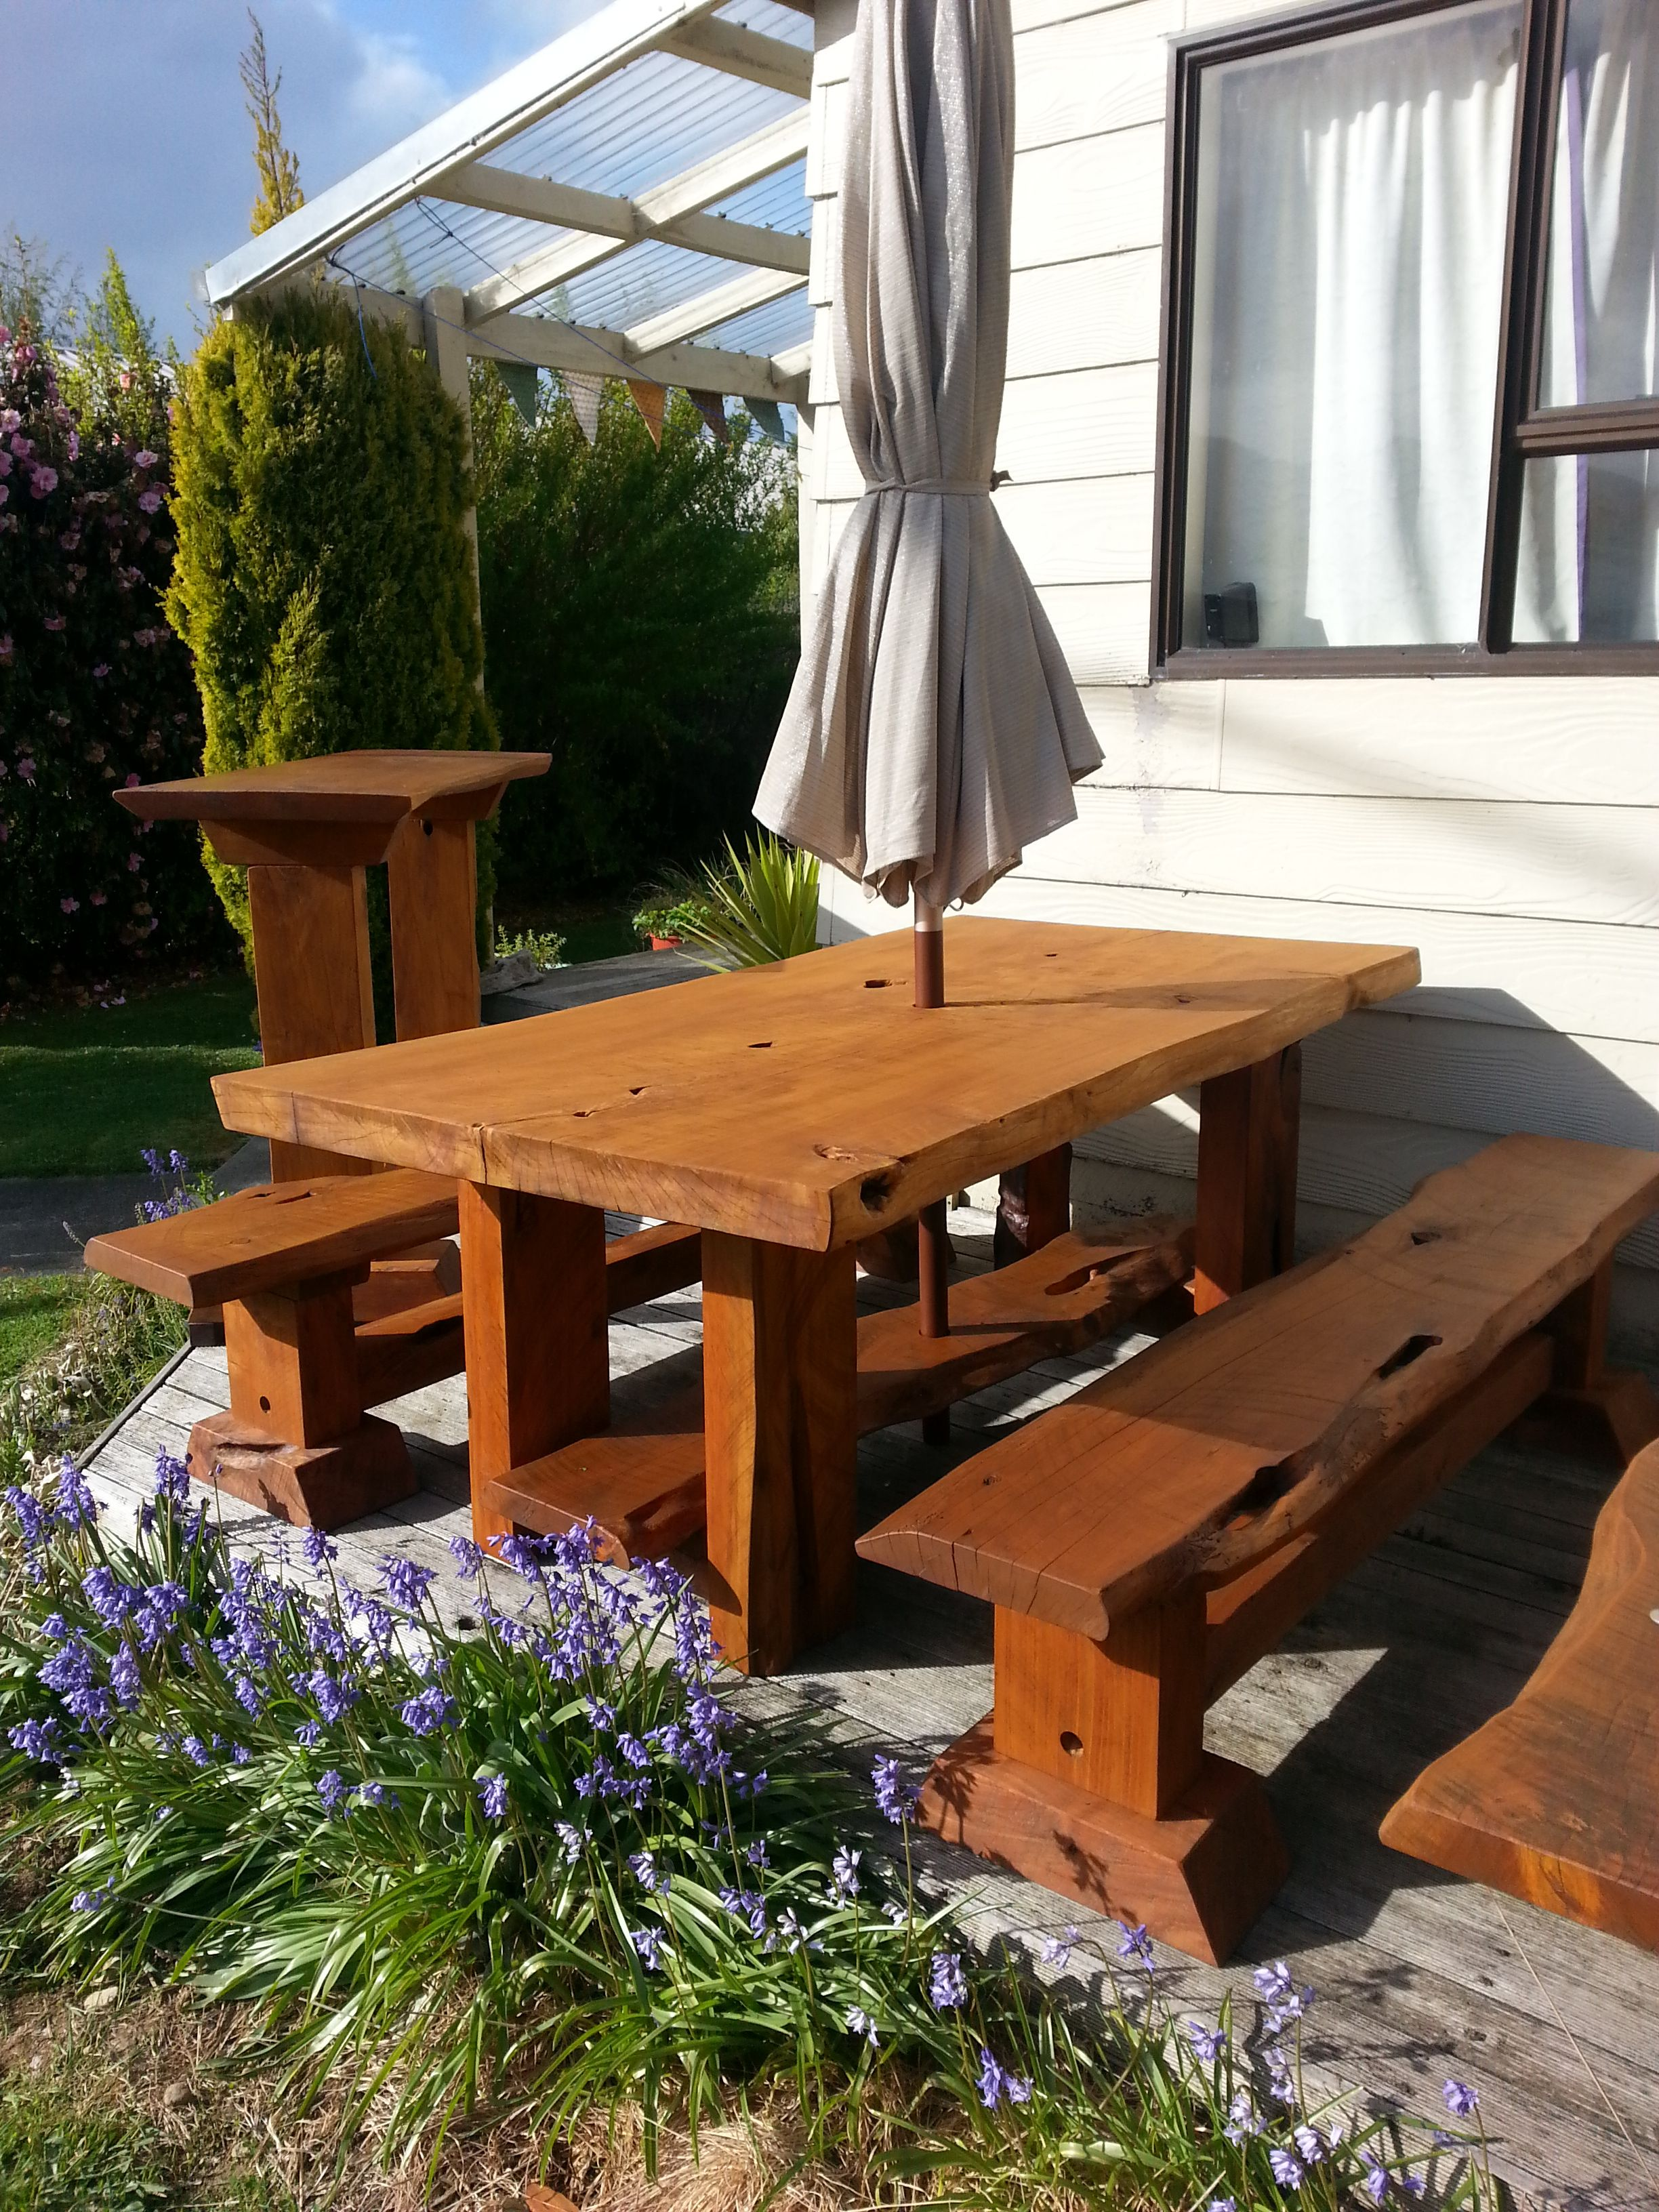 Rustic Macrocarpa Outdoor Dining Table Set With Bench Seats And